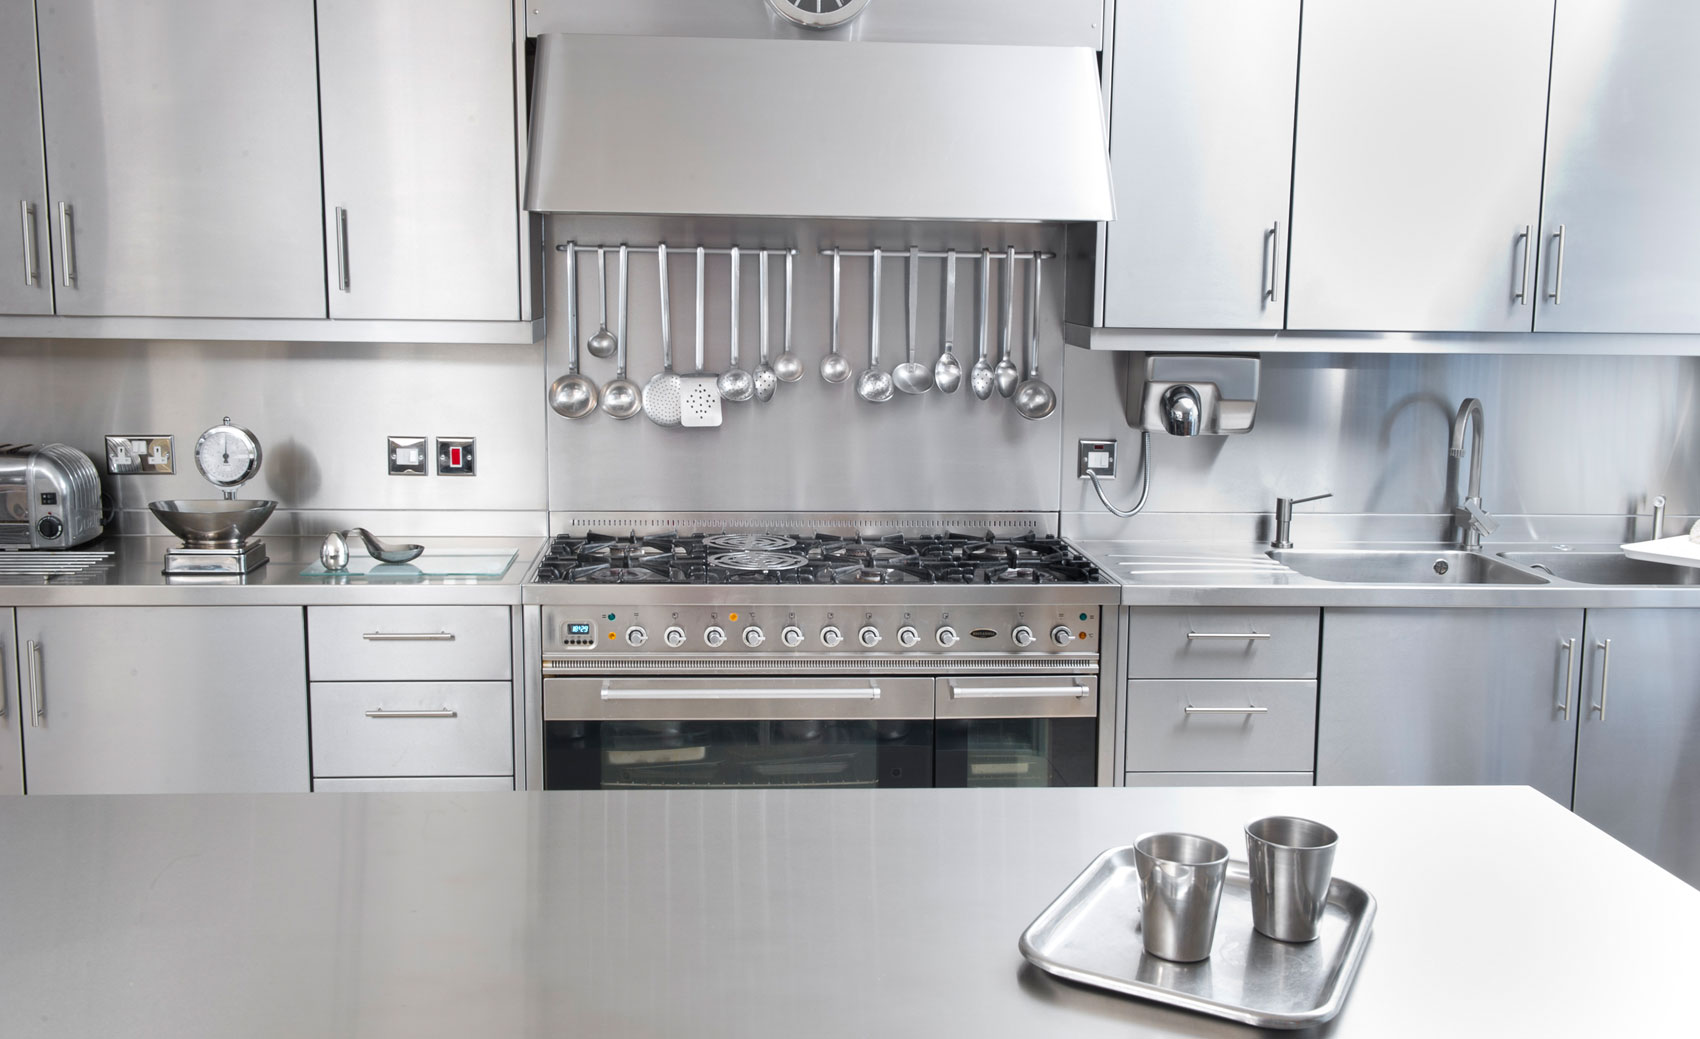 Stainless Steel Kitchen Cabinet Worktops & Splash Backs UK